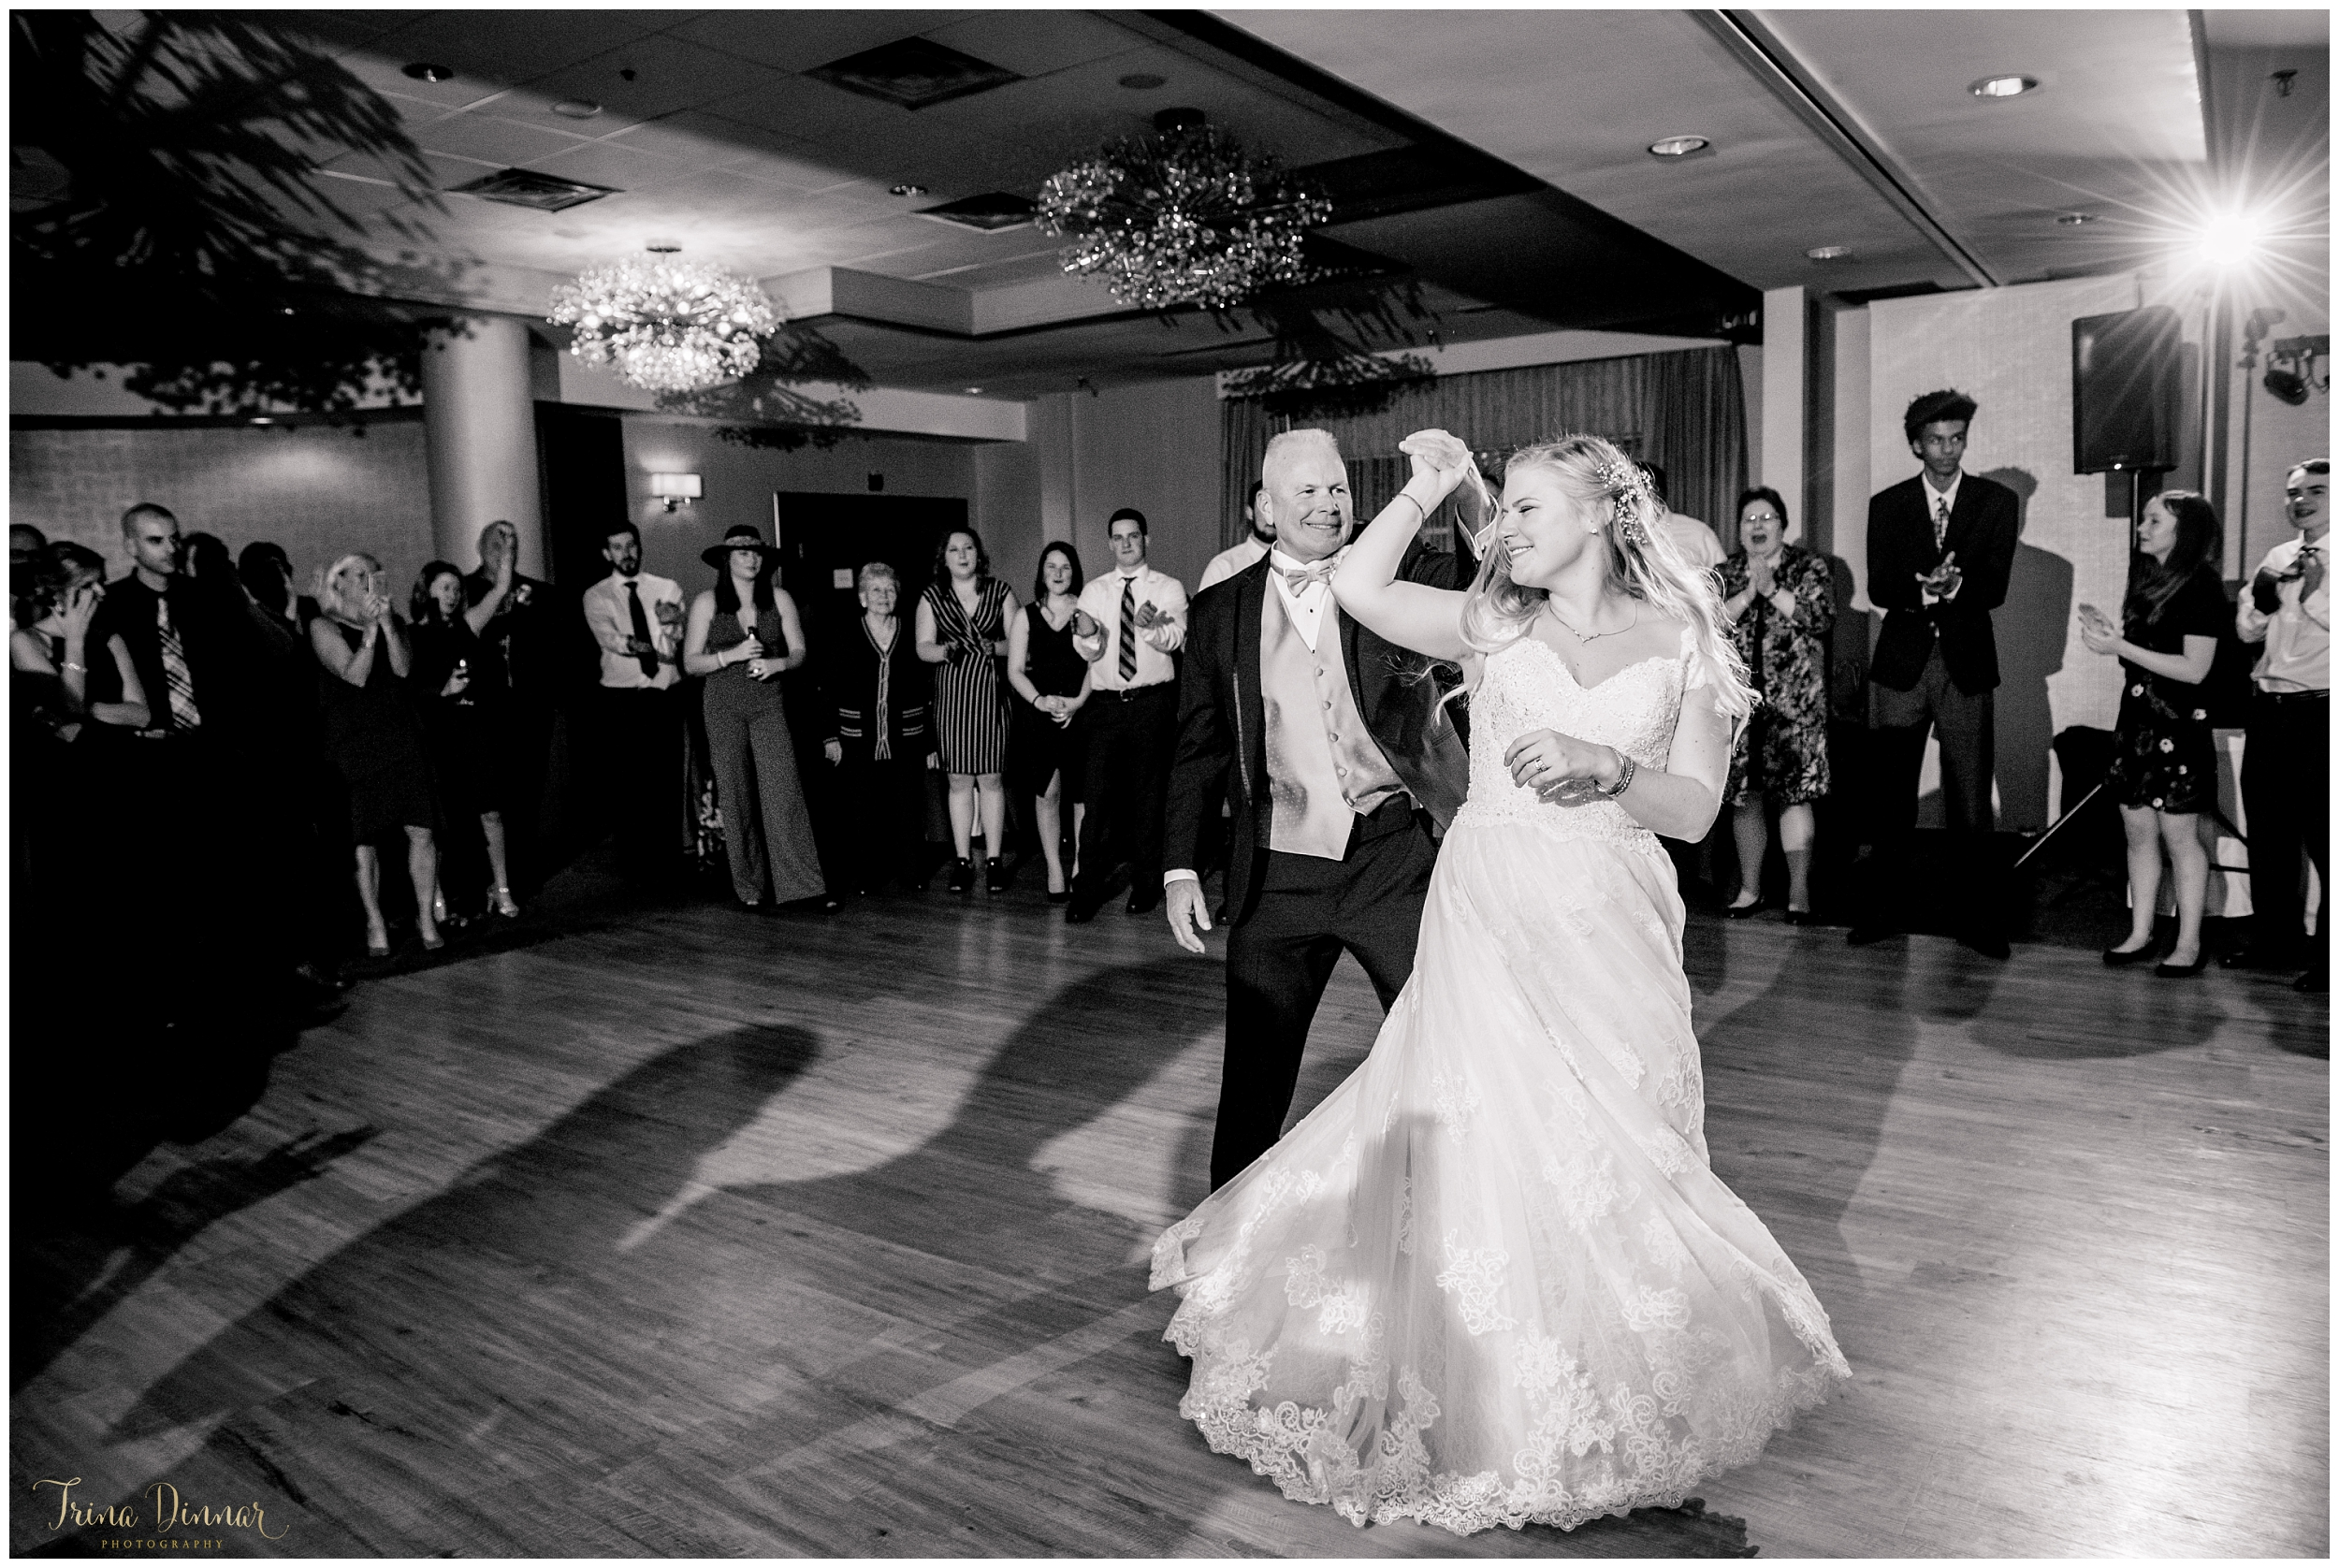 Brides Dance with Father at Sheraton Hotel Wedding Portsmouth, NH